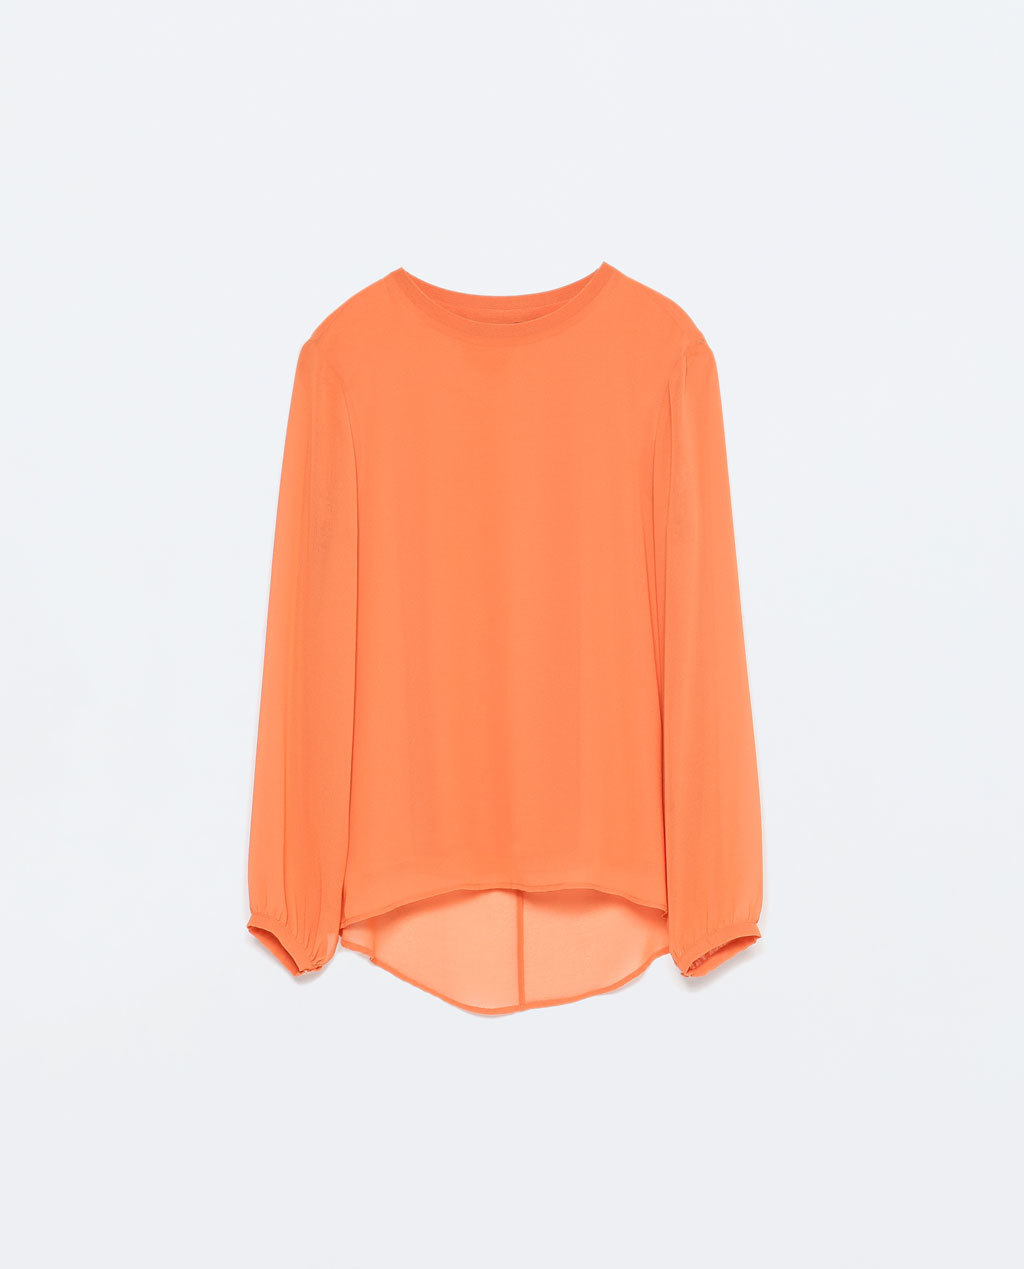 Long Sleeve Top - neckline: round neck; pattern: plain; length: below the bottom; predominant colour: bright orange; occasions: casual, work, creative work; style: top; fibres: viscose/rayon - stretch; fit: body skimming; sleeve length: long sleeve; sleeve style: standard; texture group: sheer fabrics/chiffon/organza etc.; pattern type: fabric; season: s/s 2015; wardrobe: highlight